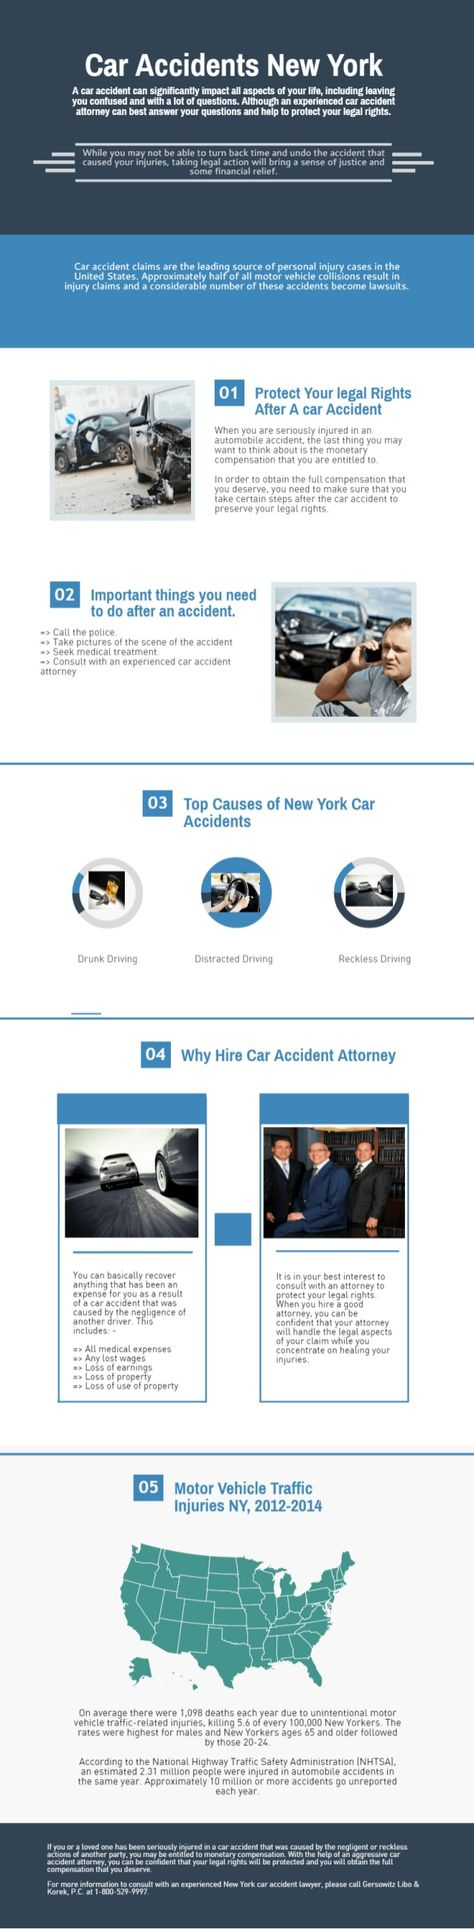 Car Accident Attorney NY - Protect Your Legal Rights